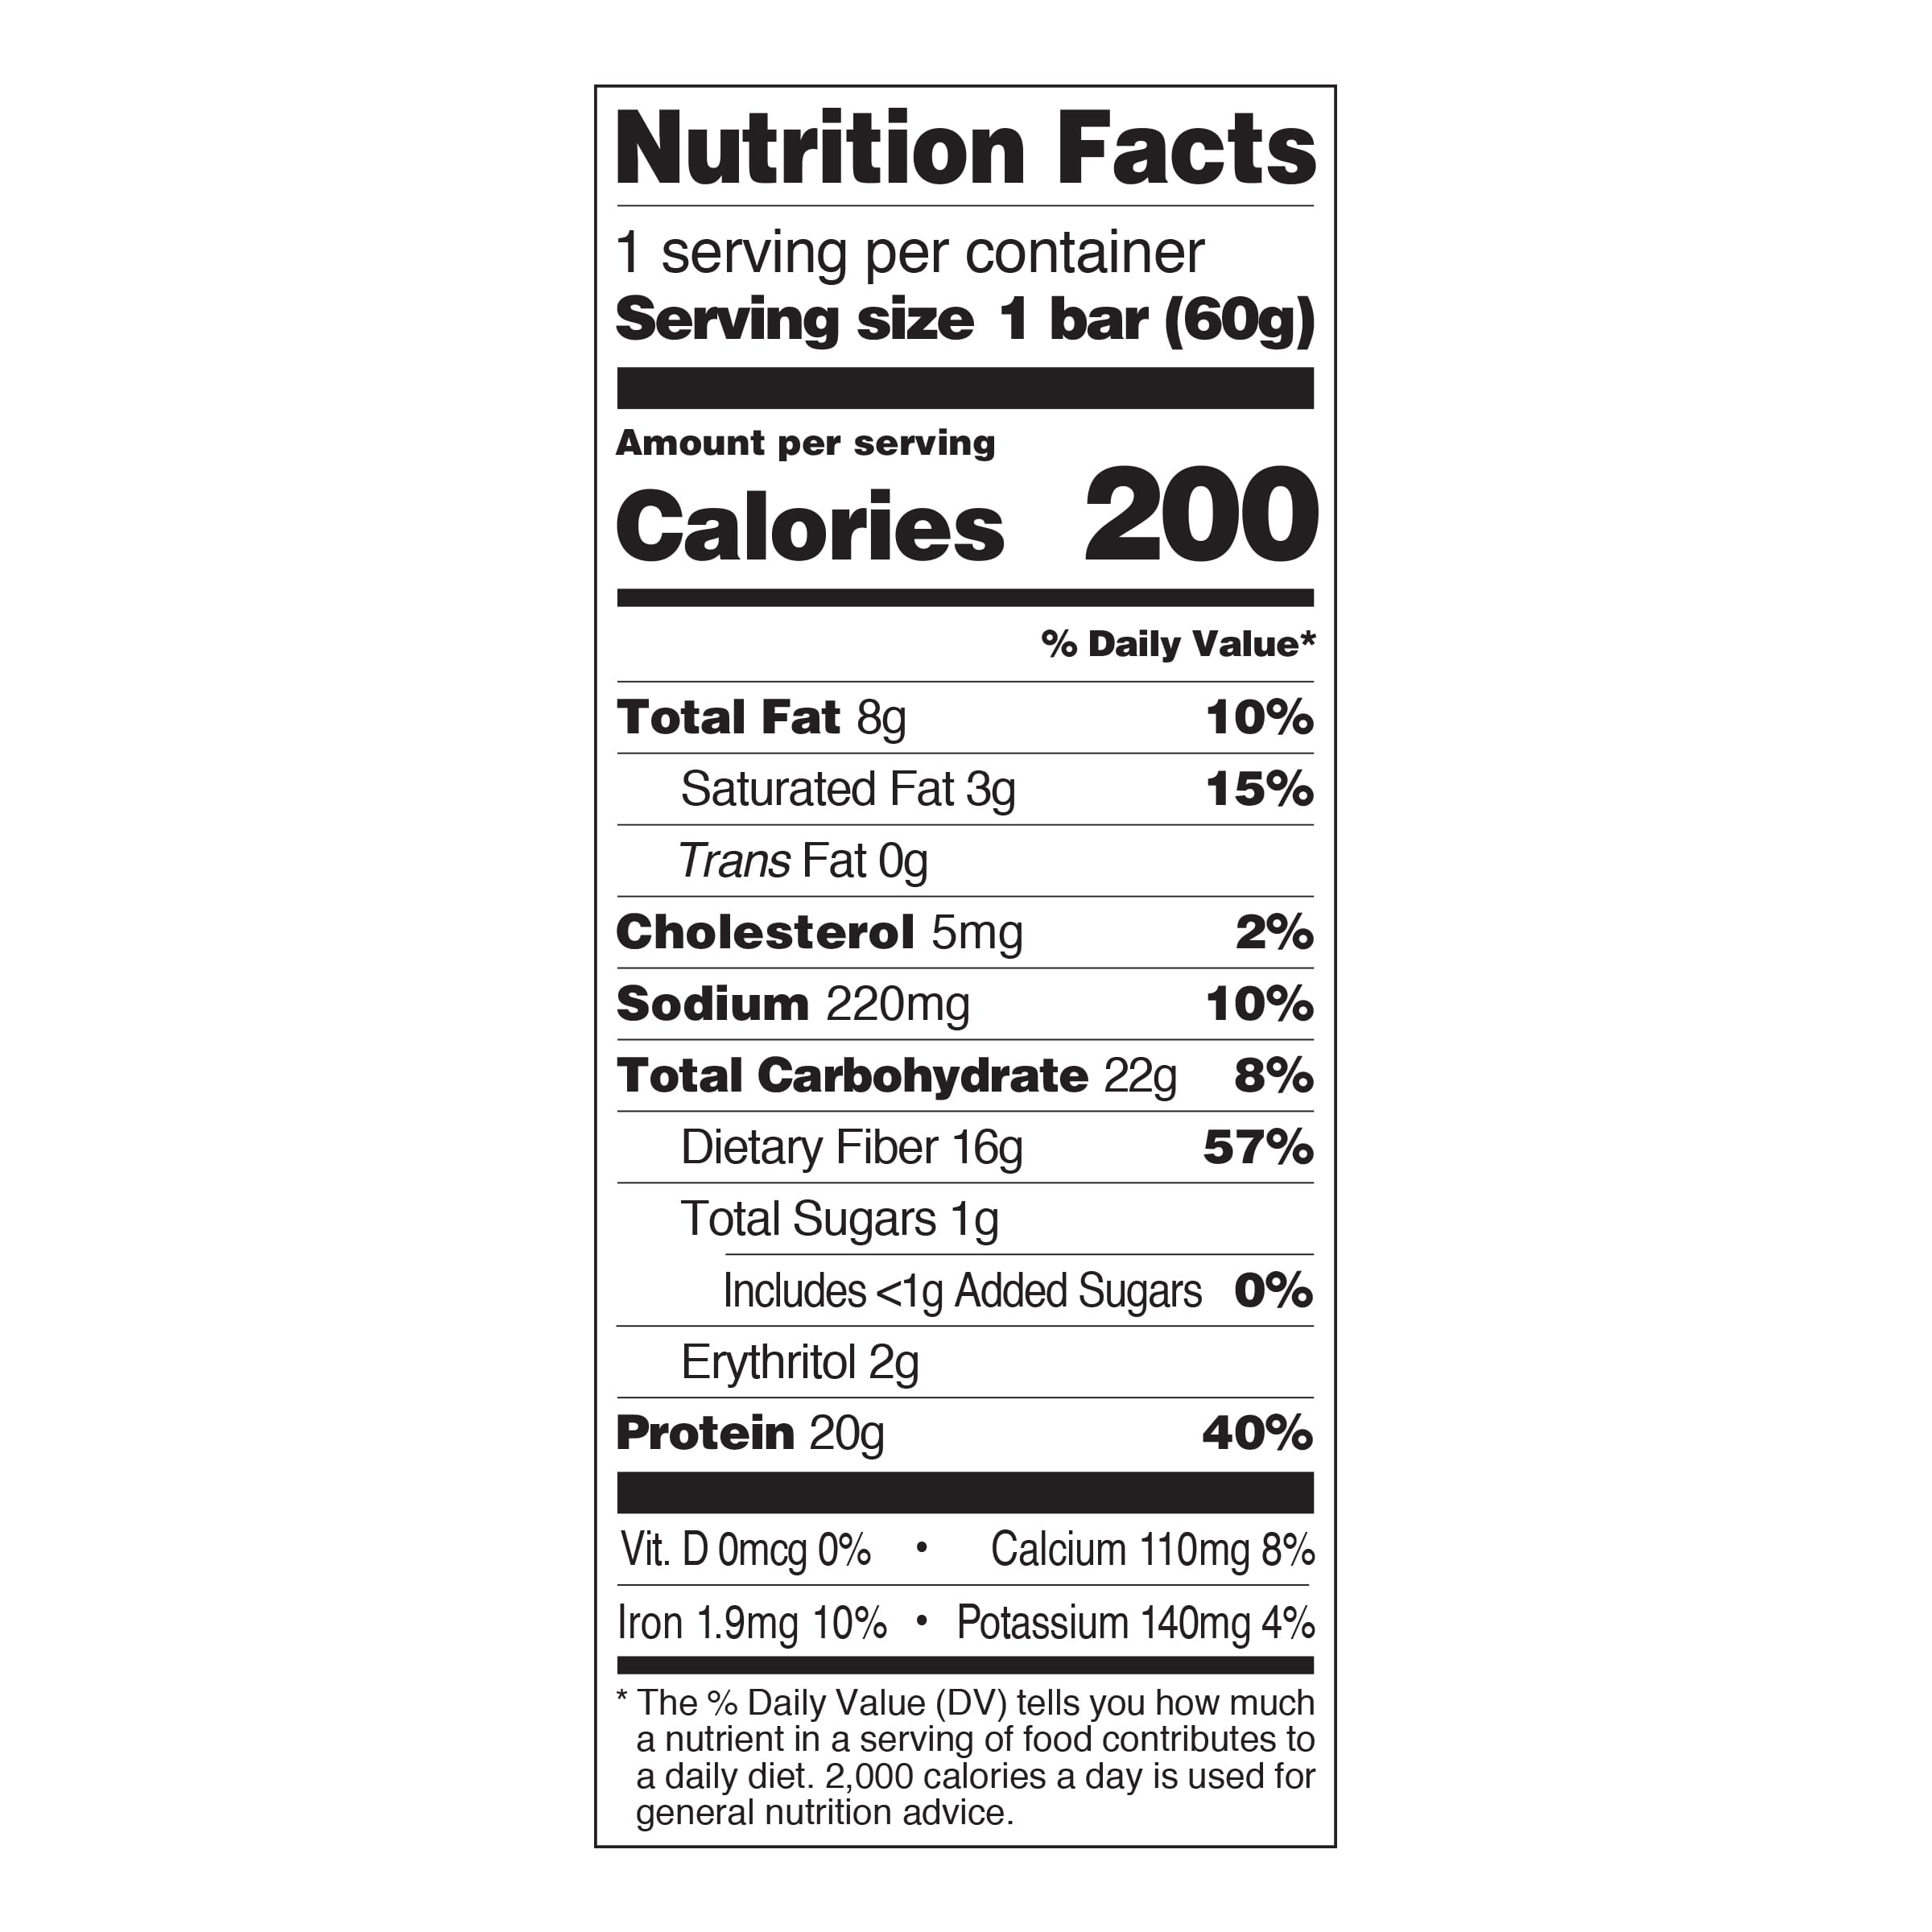 Mint Chocolate Chunk Nutrition